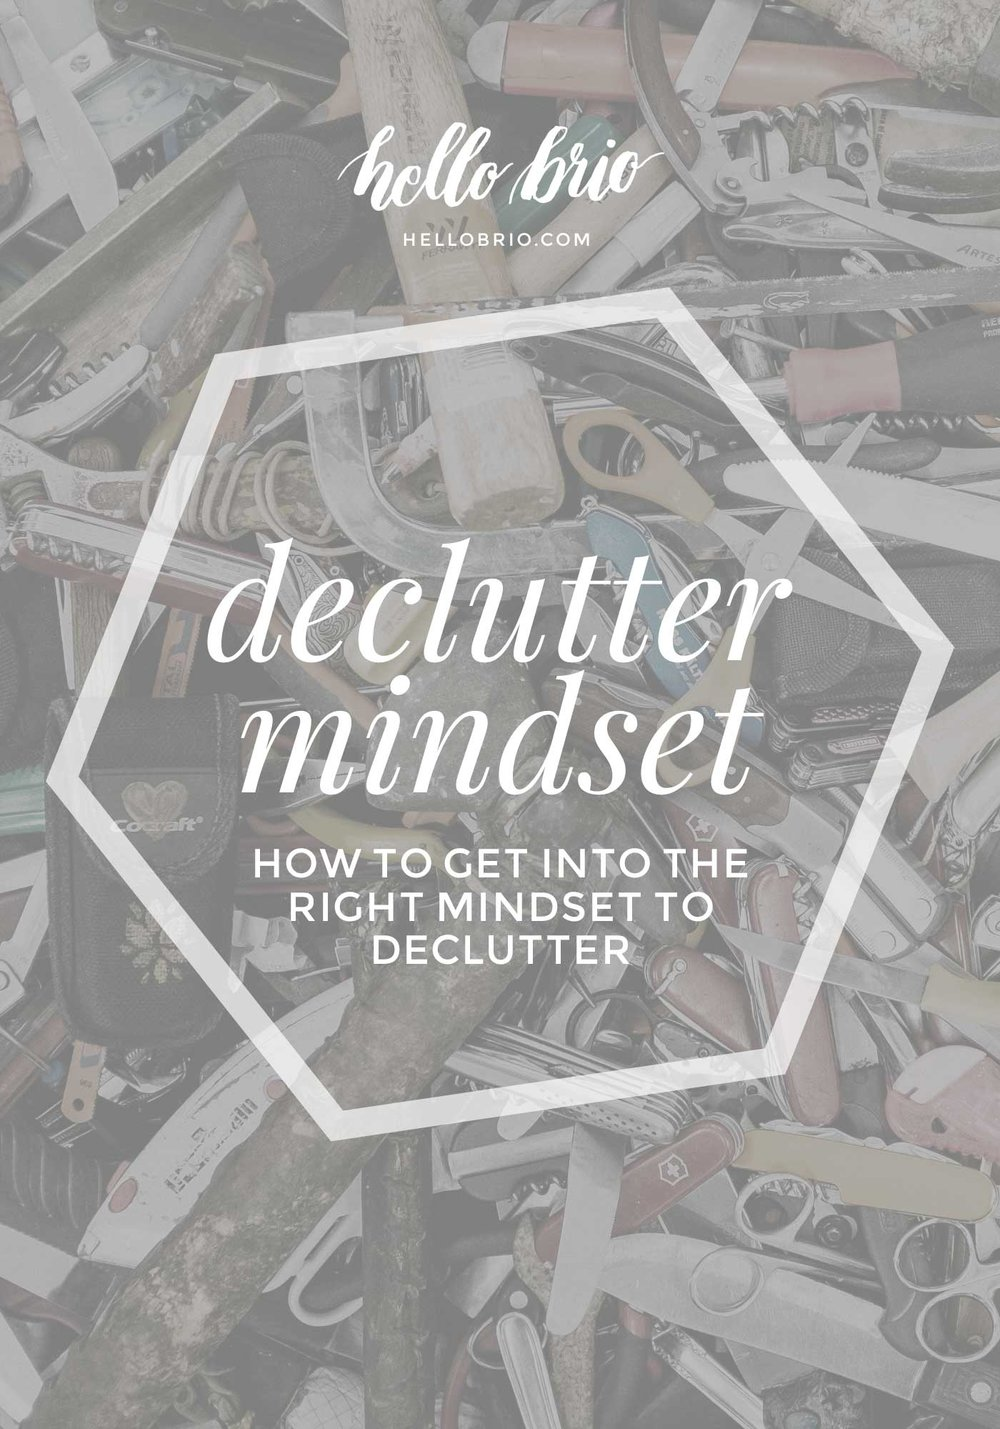 right-mindset-to-declutter-title.jpg